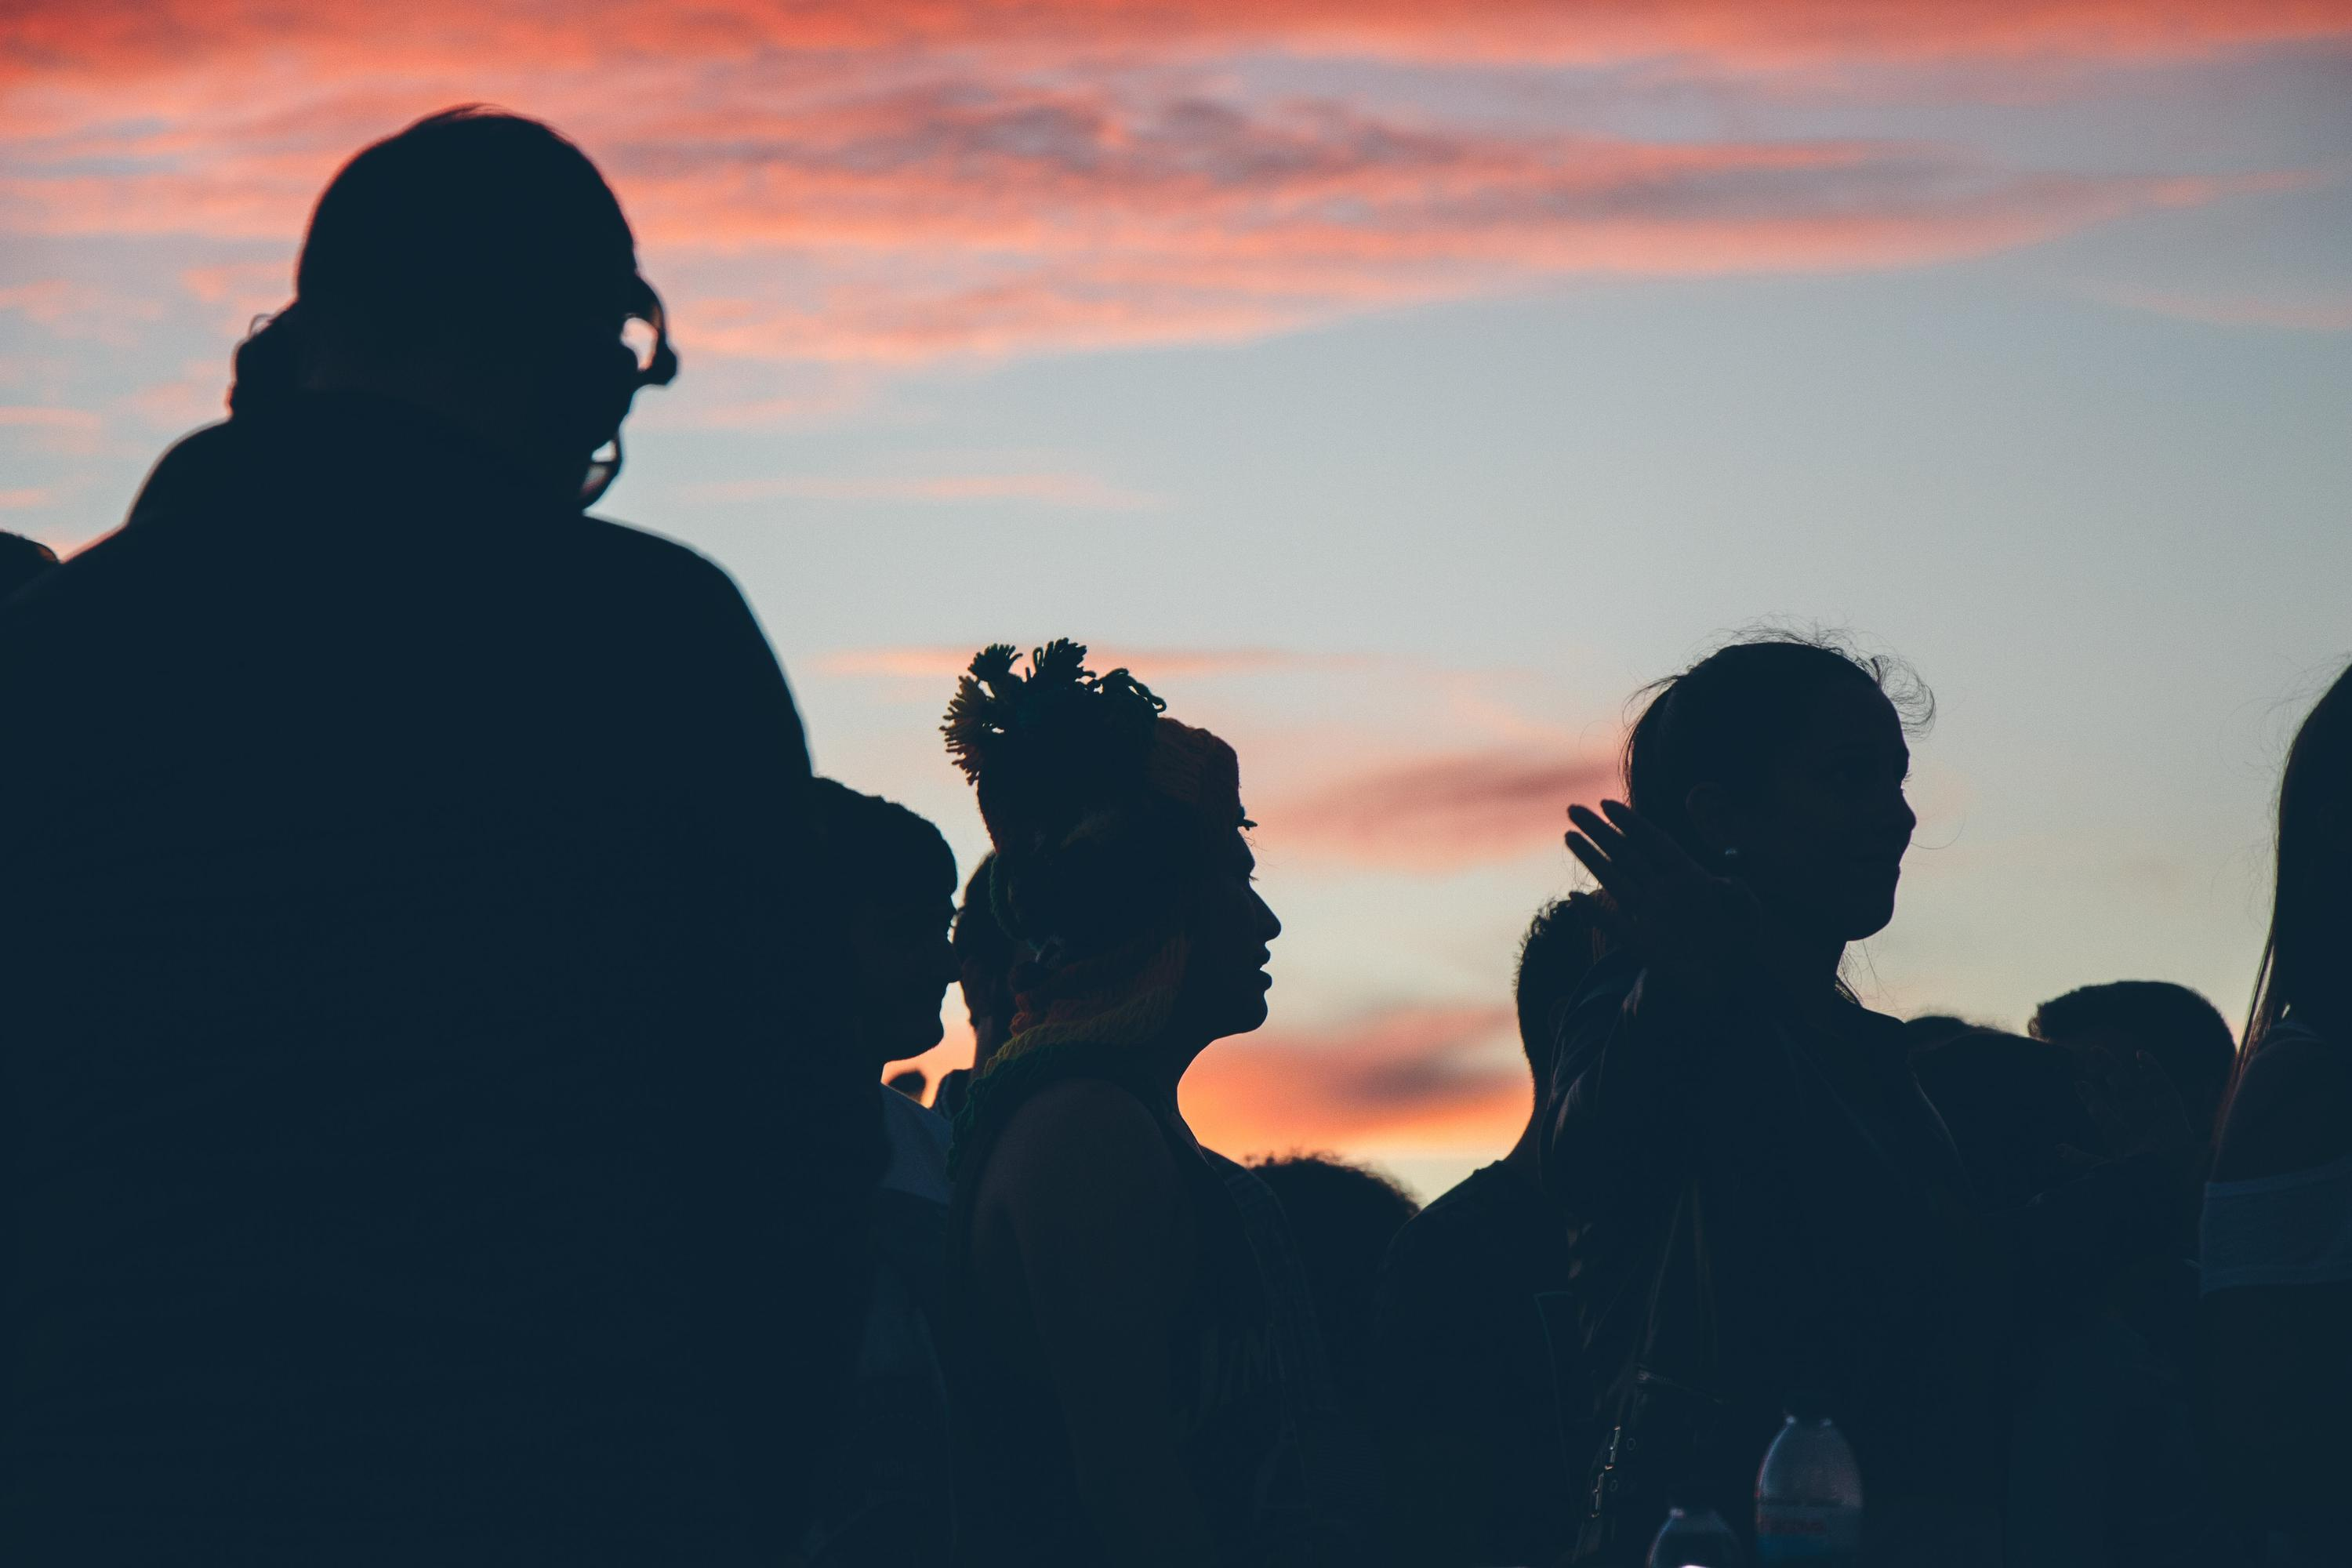 silhouettes of a crowd of people at sunset